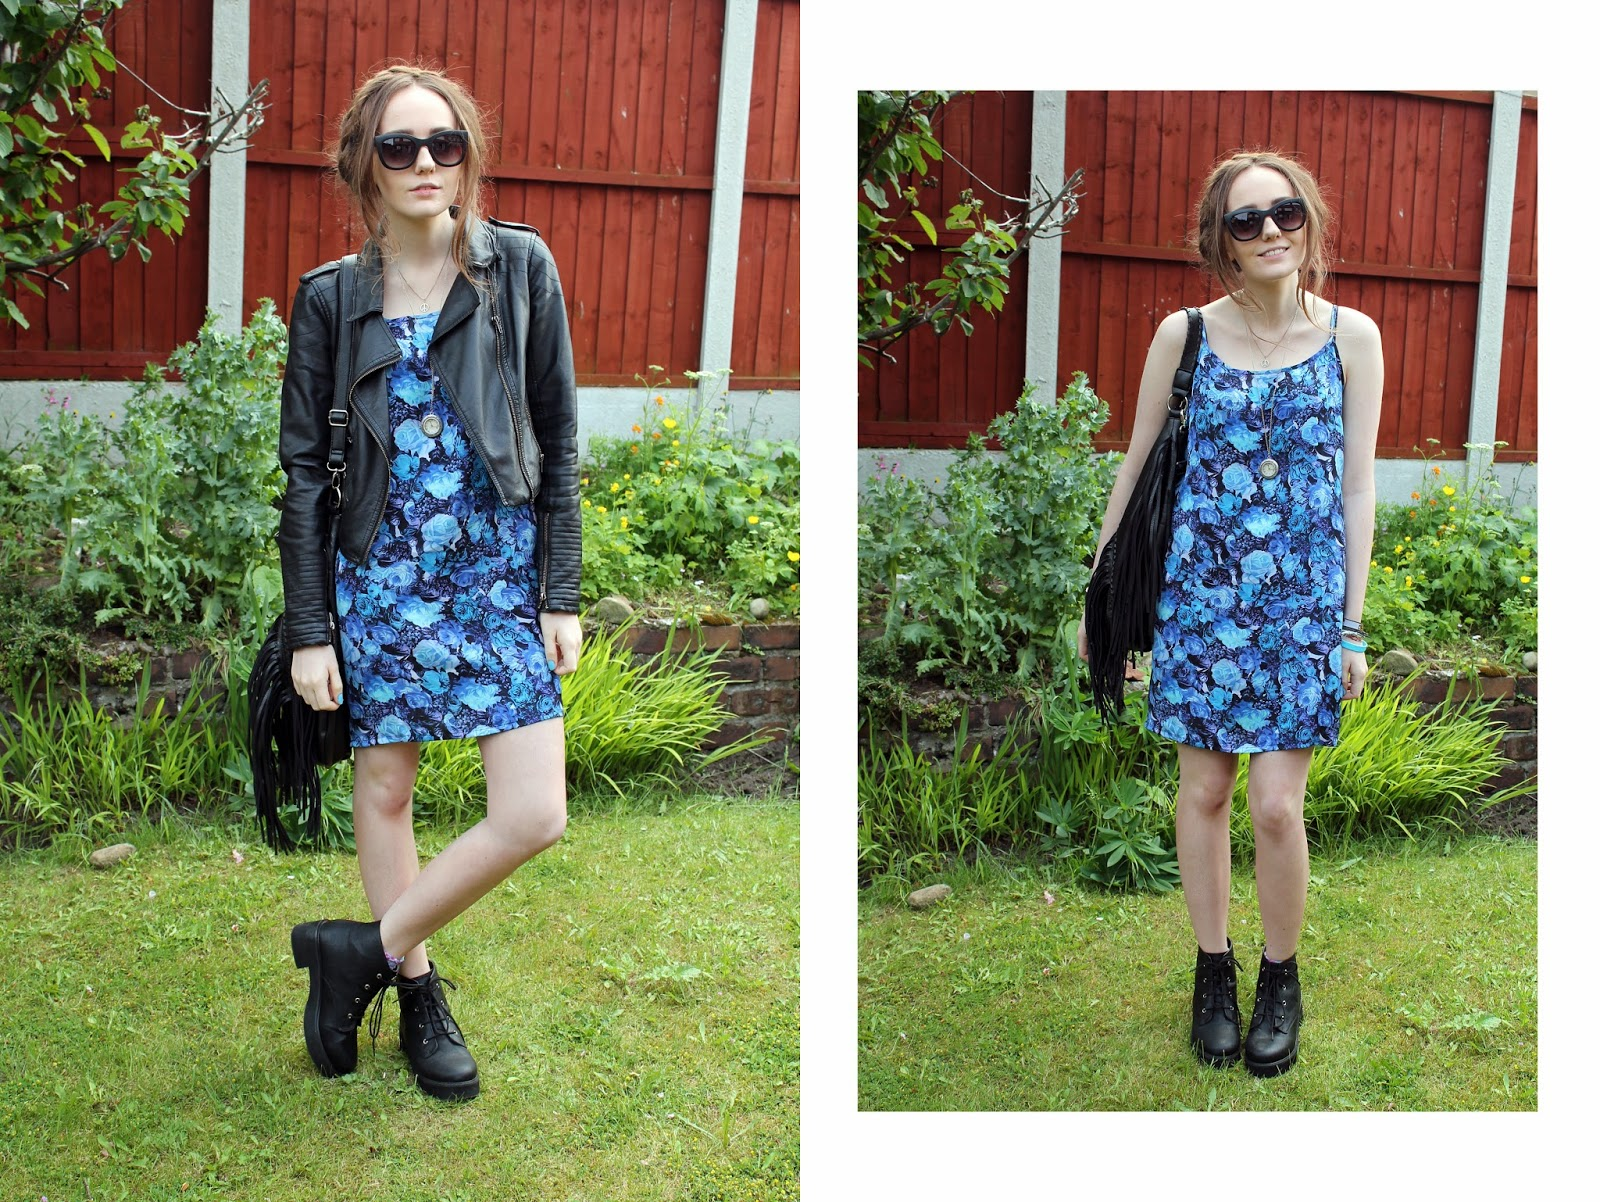 milkmaid braids, matte primark sunglasses, blue floral slip dress, faux leather jacket, fringed leather bag, asos revolution boots, OOTD